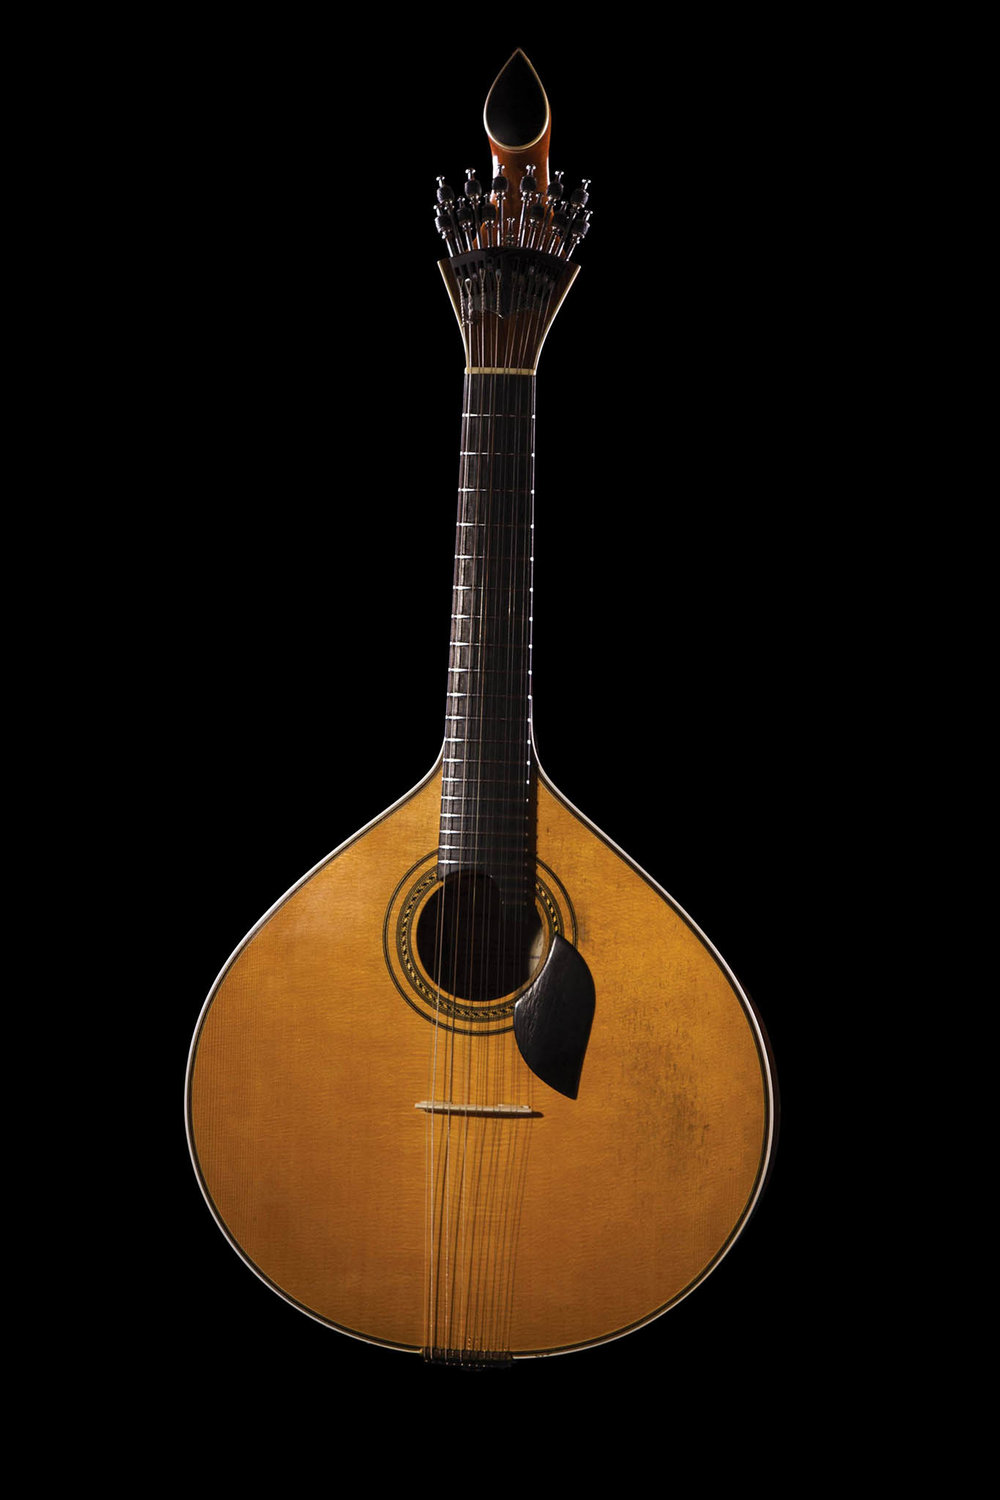 The Portuguese guitar can be identified by its pear-shaped harmonic box and tear shape at the end of the head.Mauro Rodrigues / shutterstock.com